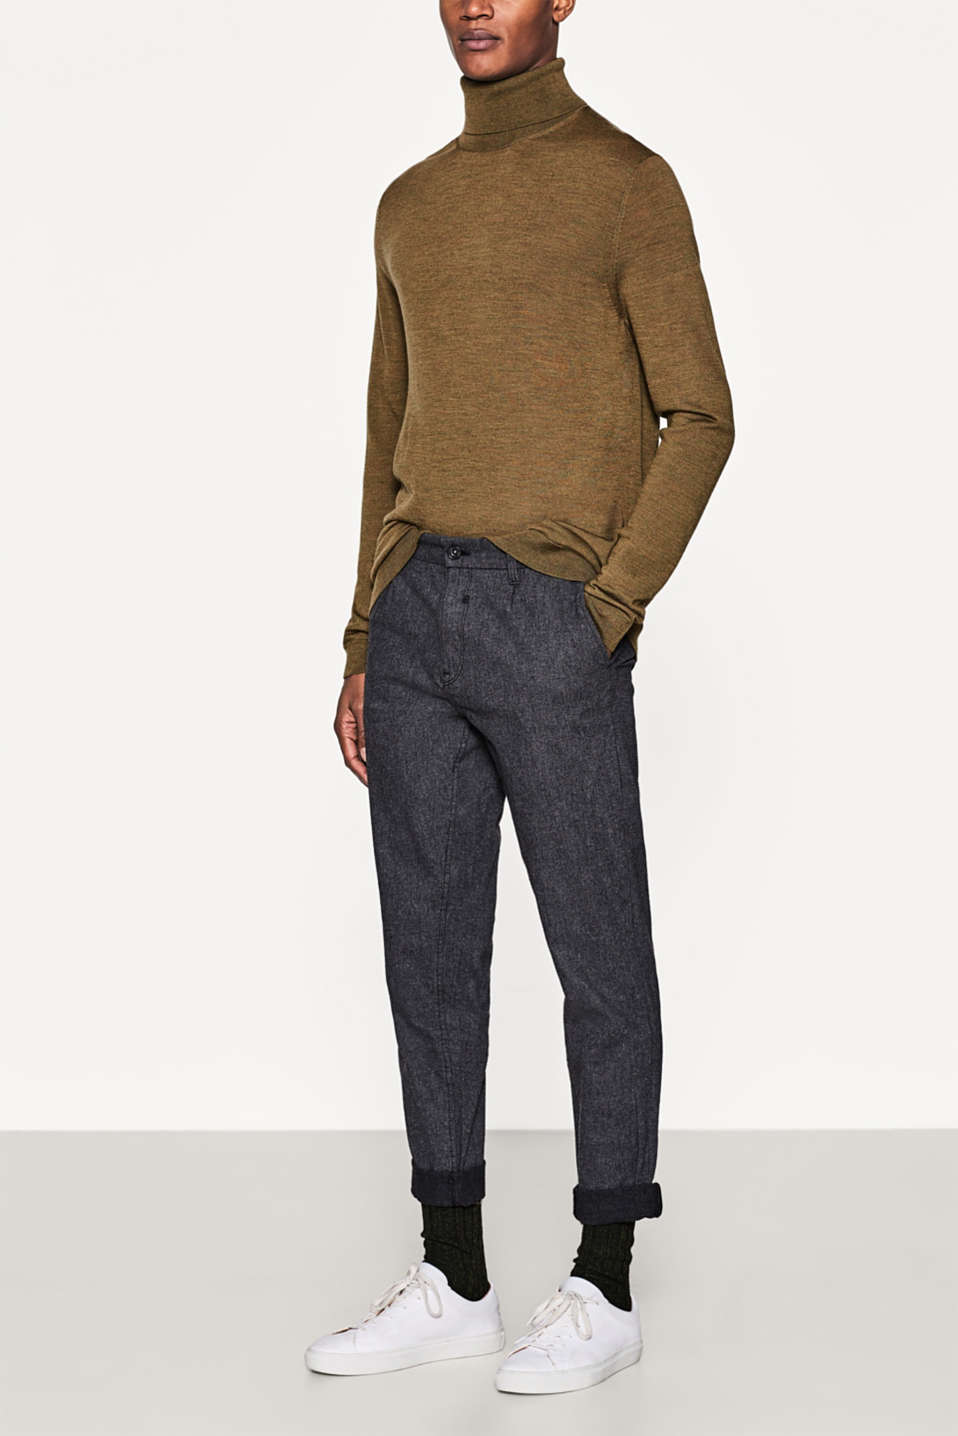 Esprit - Loose-cut, textured chinos